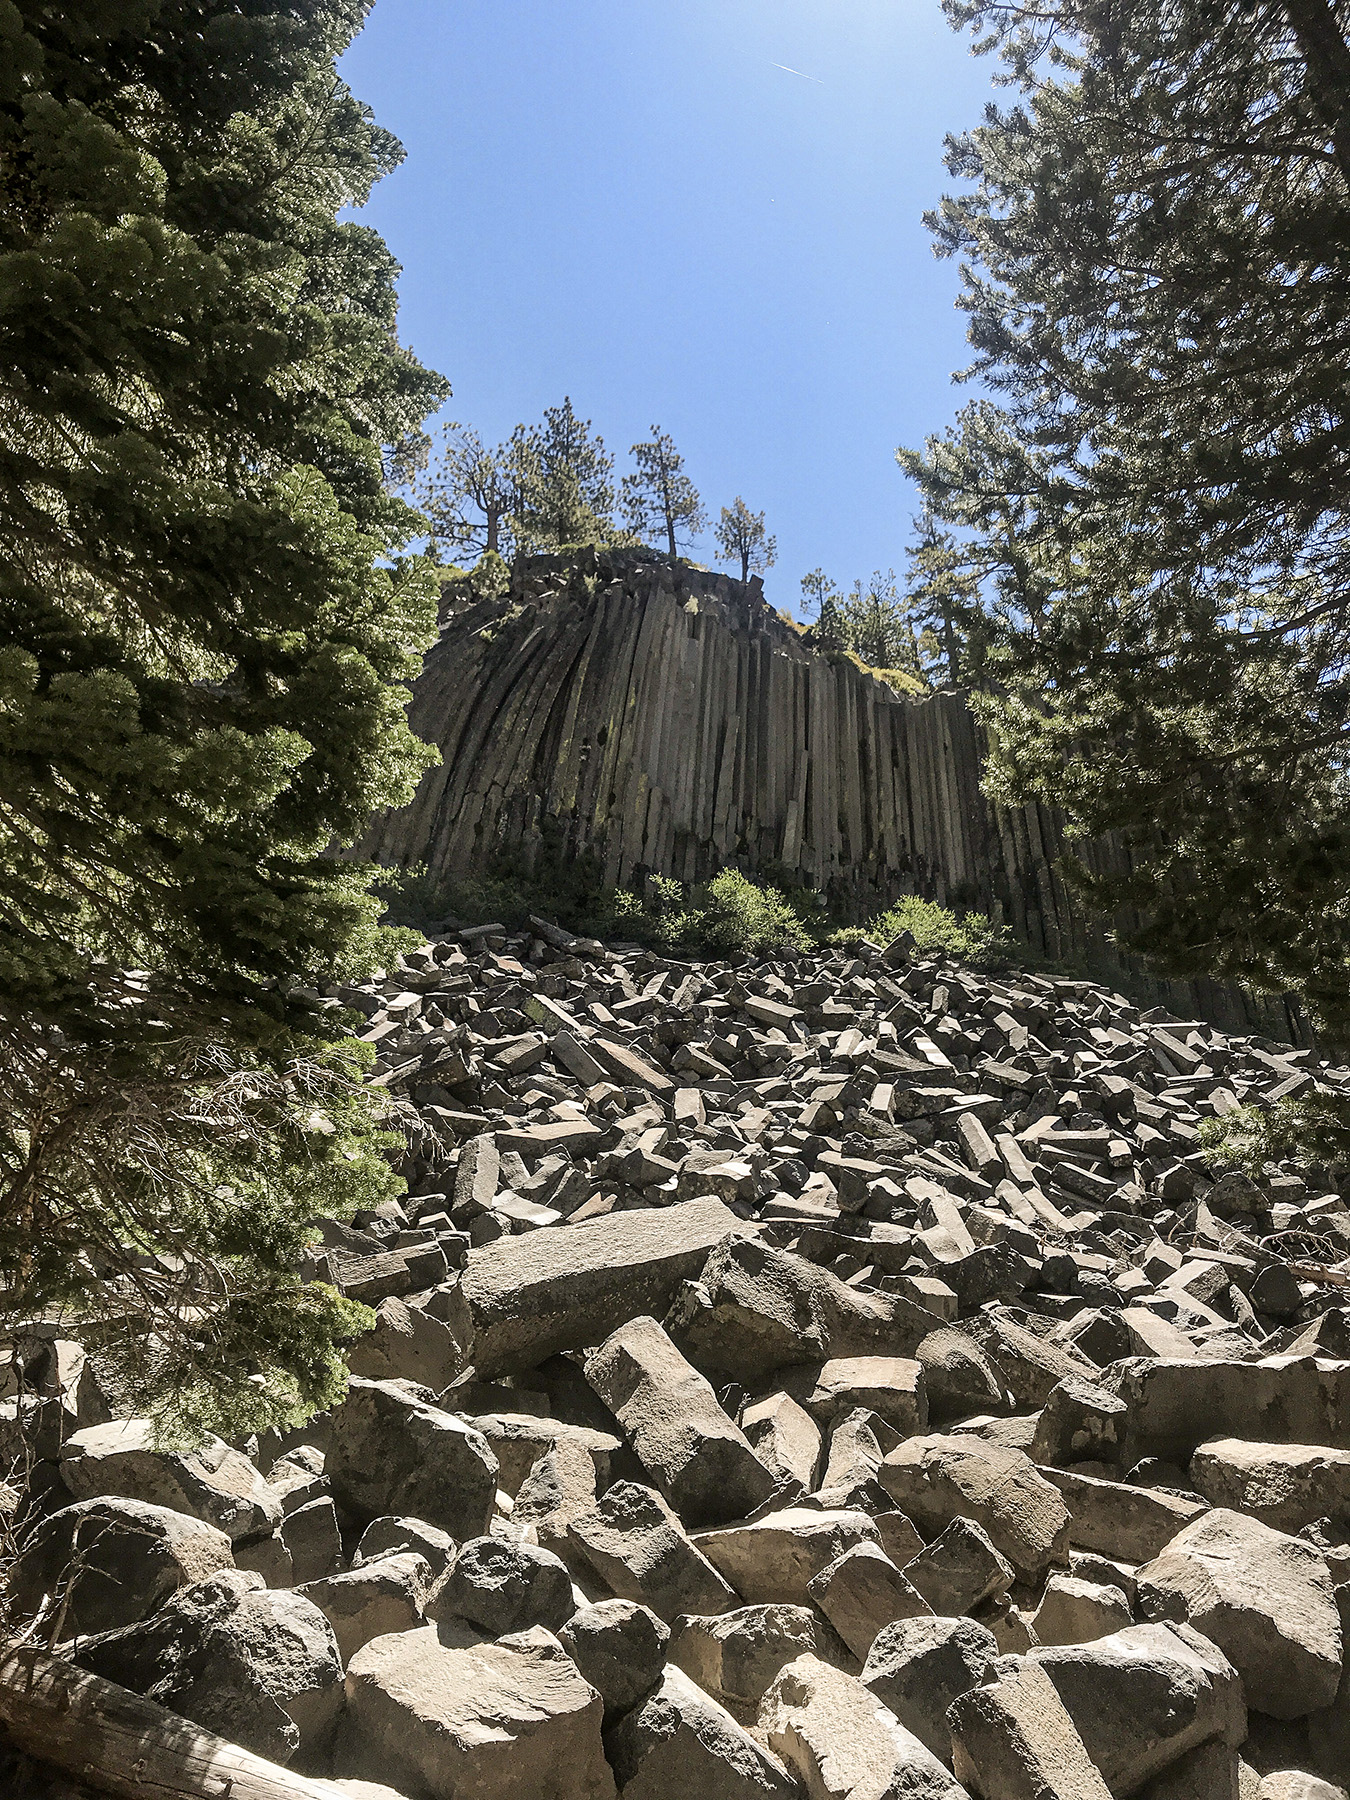 Devils Postpile National Monument in California near Mammoth Lakes. Columns made of basalt on the side of the mountain.